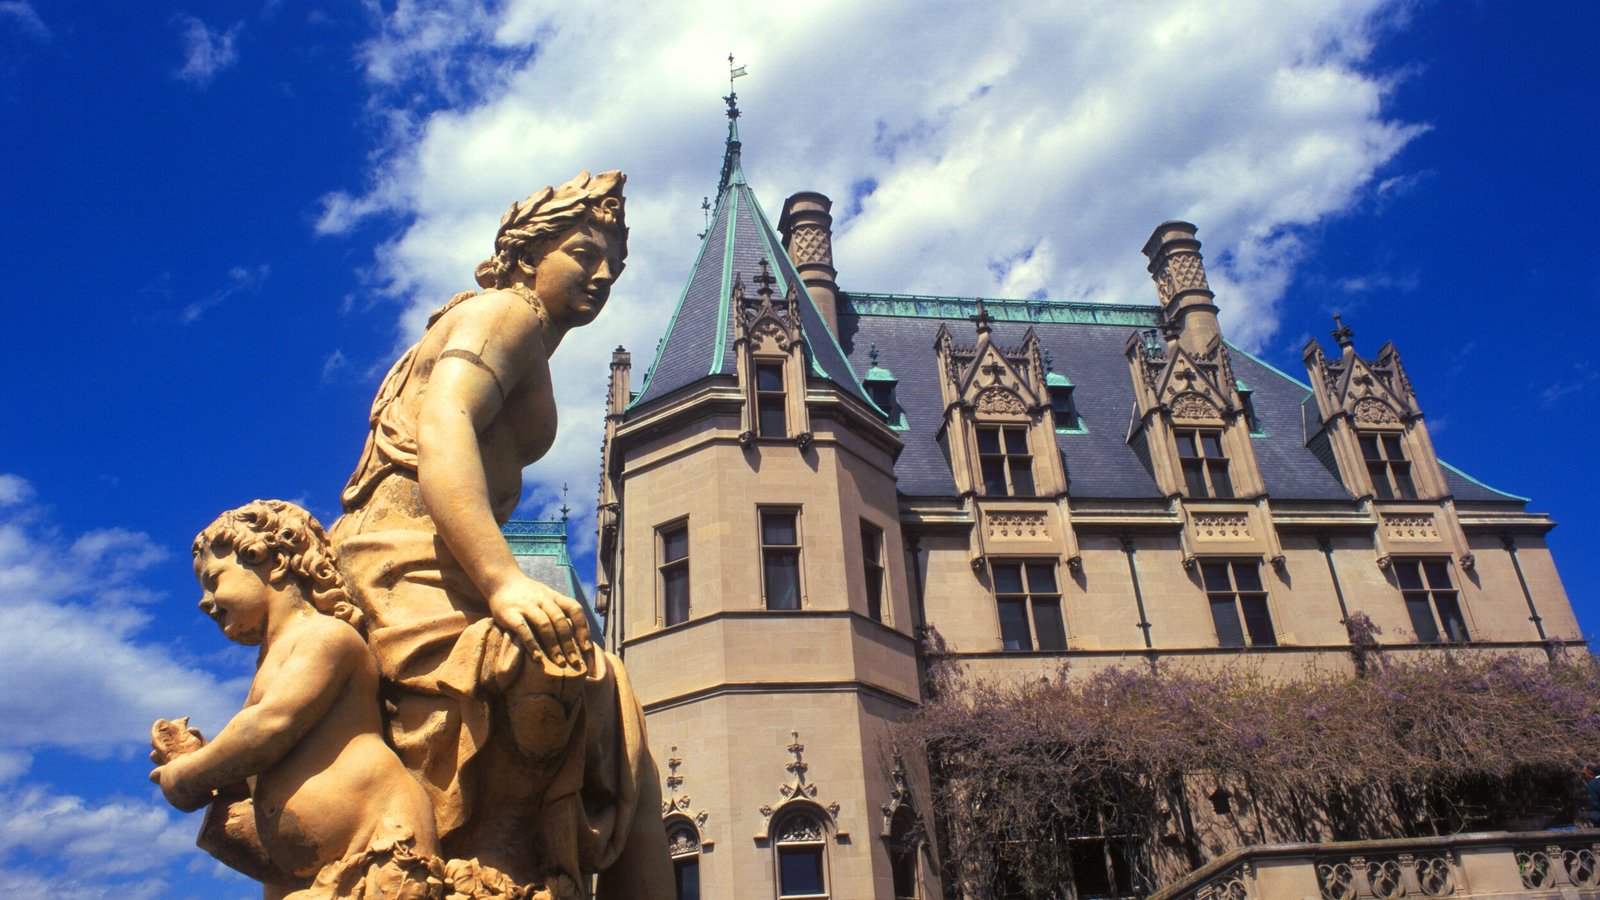 North Carolina which includes chateau or palace, heritage architecture and a statue or sculpture